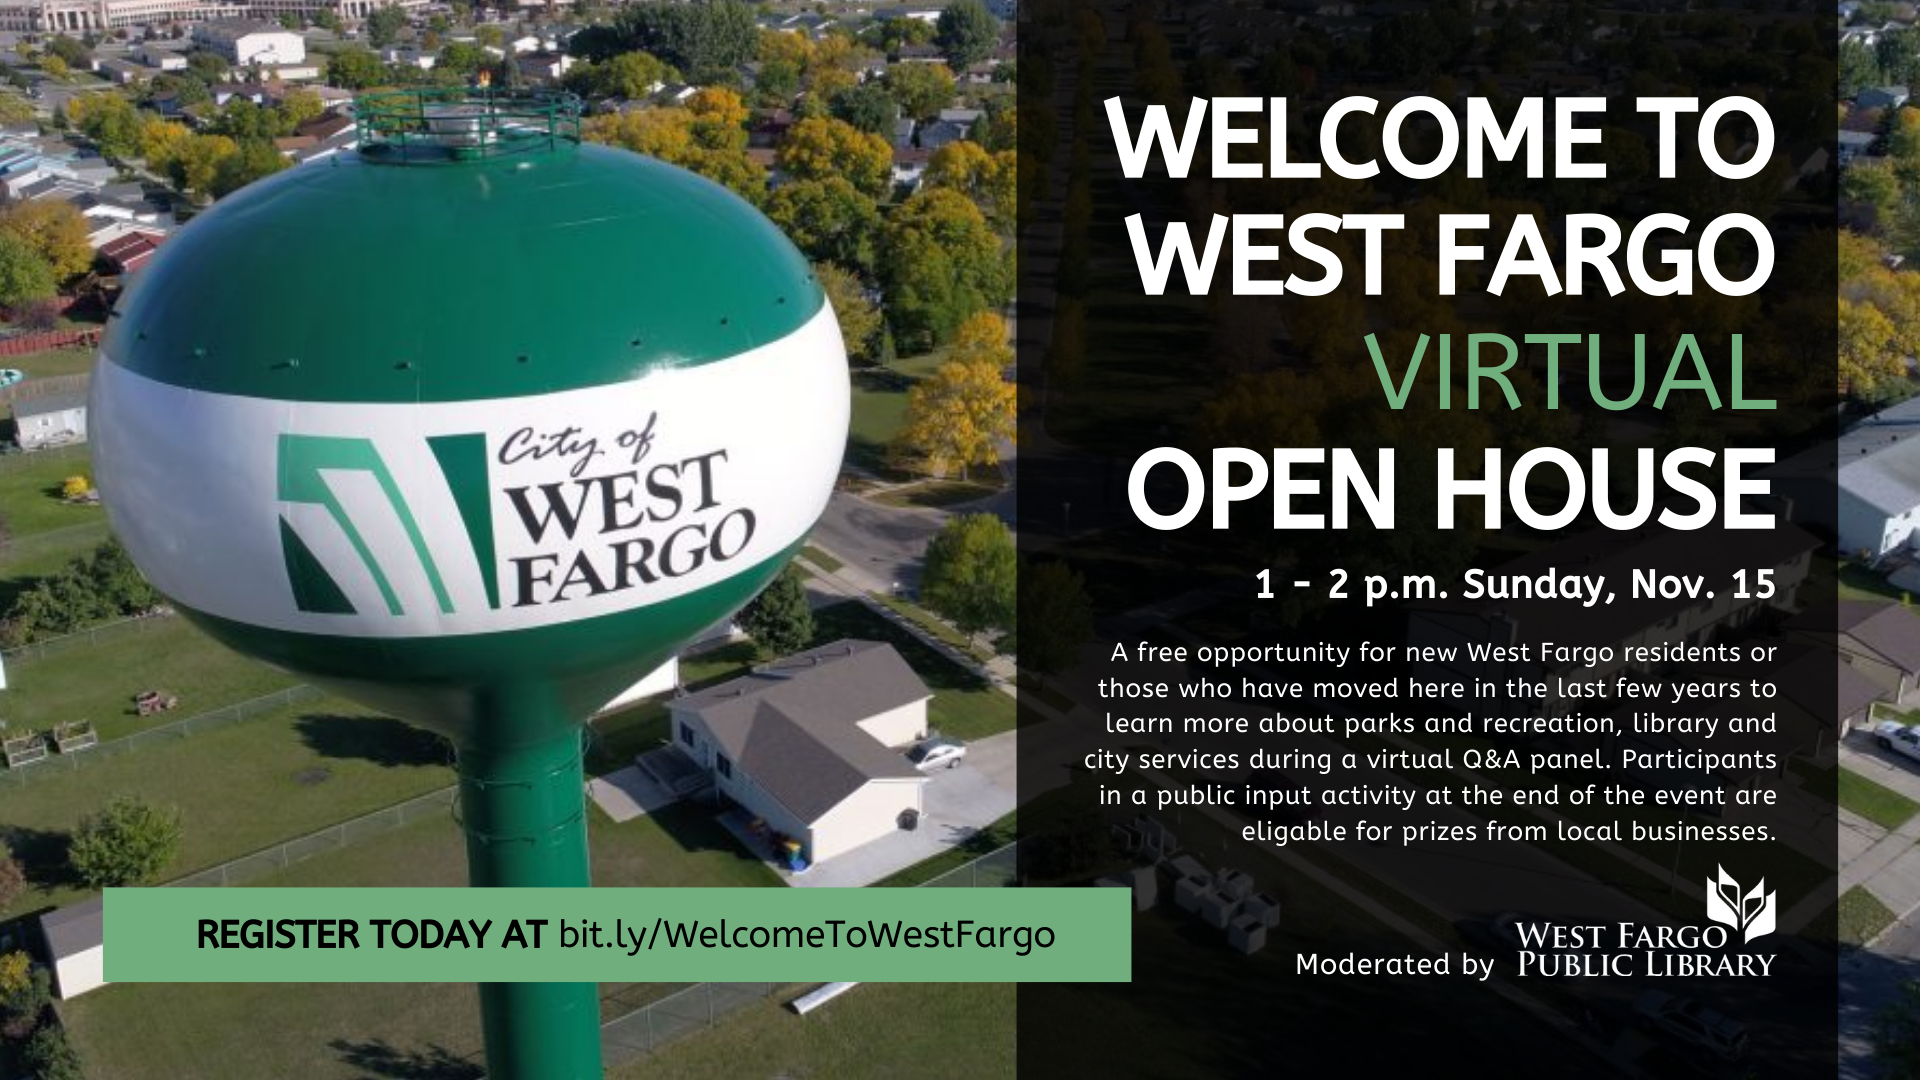 Welcome to West Fargo Virtual Open House Graphic